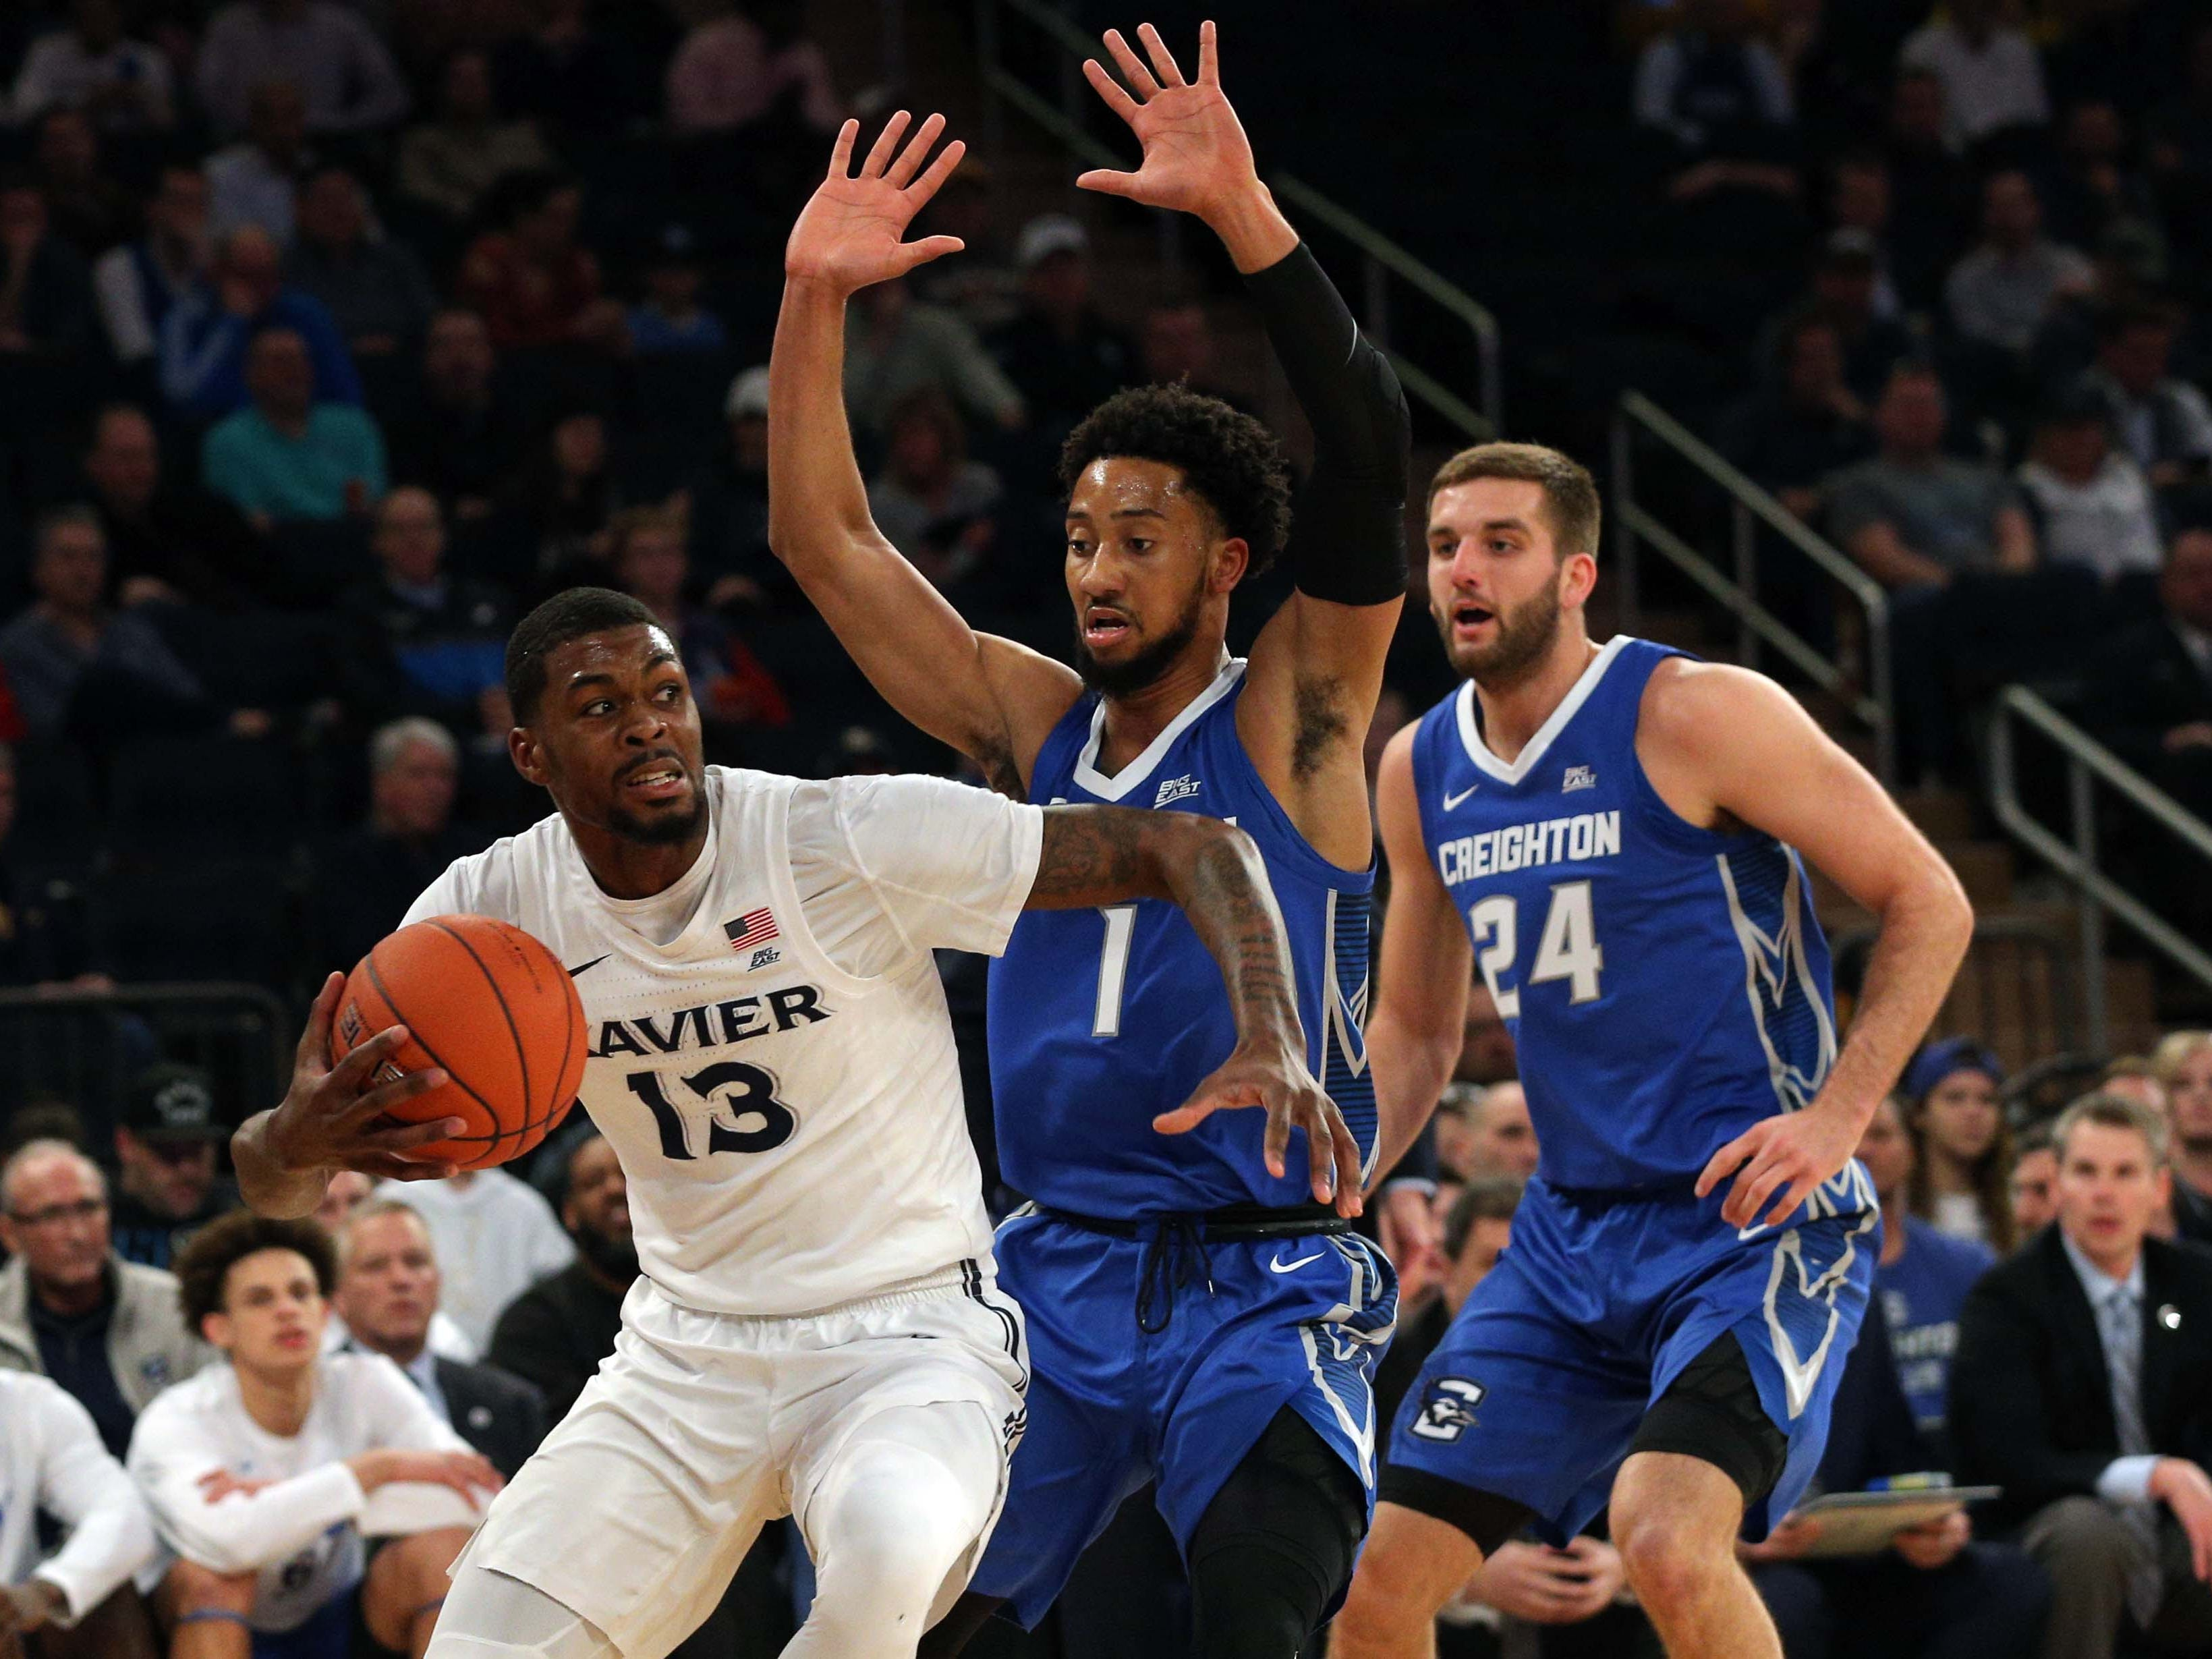 Xavier Musketeers forward Naji Marshall (13) controls the ball against Creighton Bluejays guards Davion Mintz (1) and Mitchell Ballock (24) during the first half of a quarterfinal game of the Big East conference tournament at Madison Square Garden.